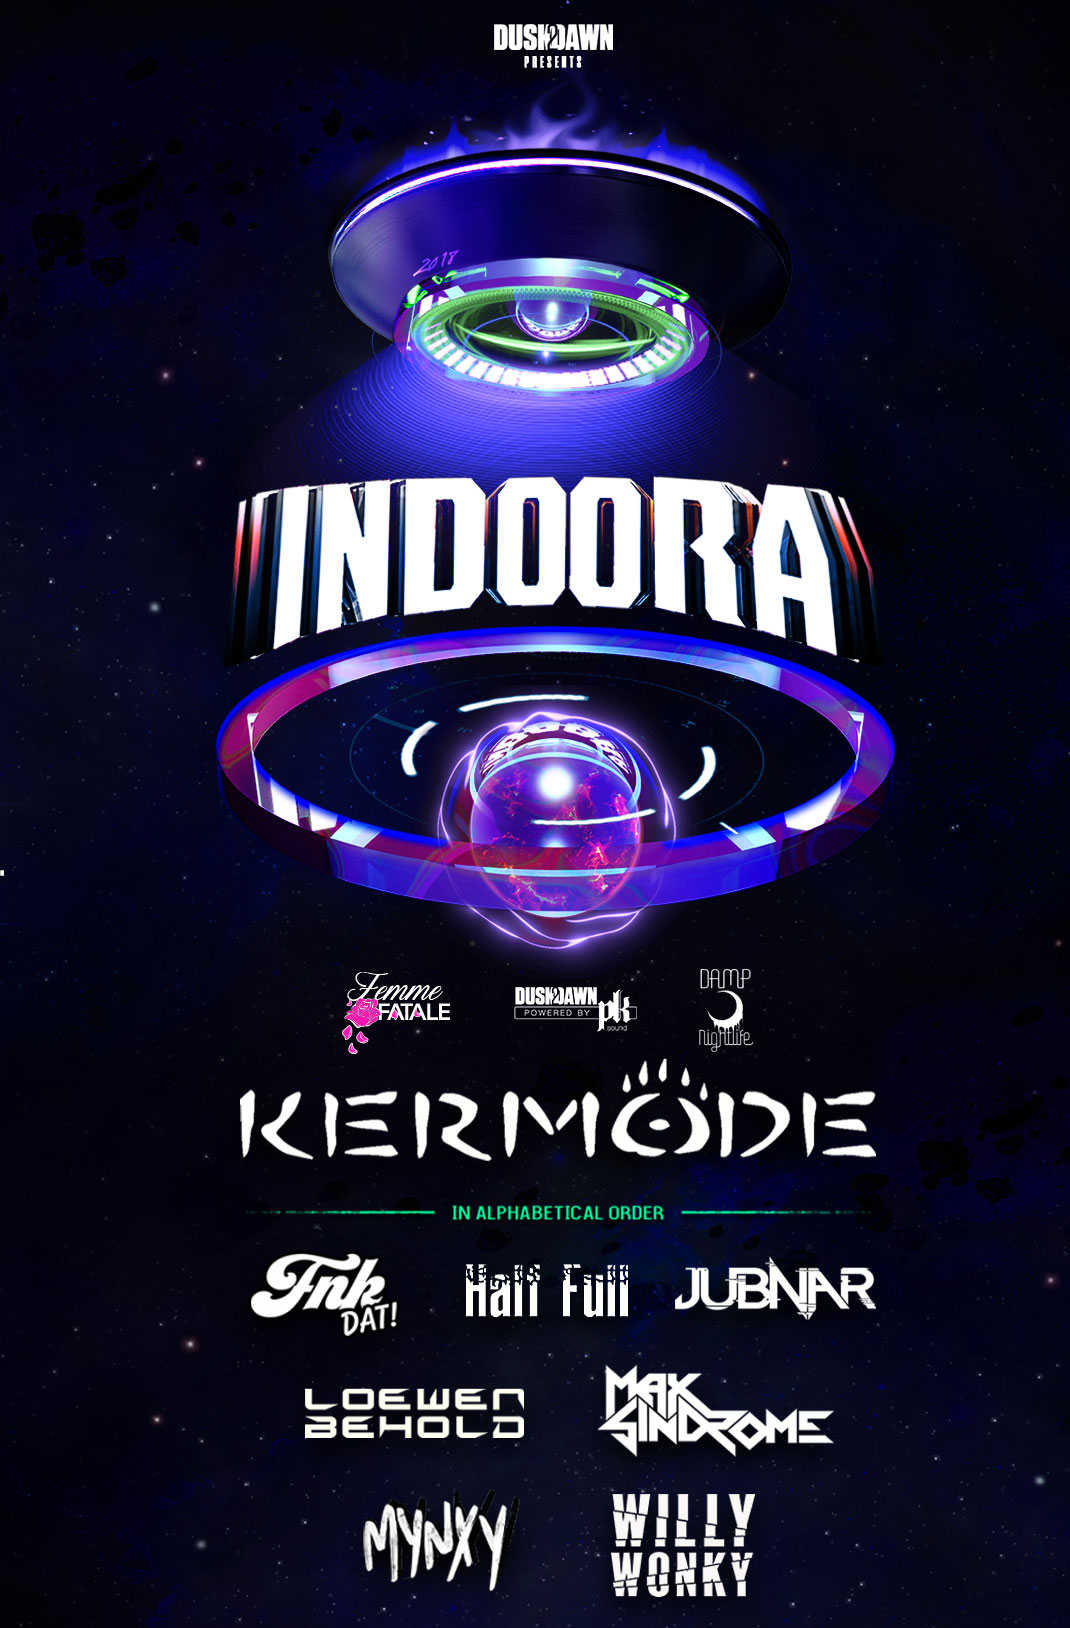 Dusk2Dawn & Damp Nightlife pres: Indoora (The Ilfora Makeup Party)